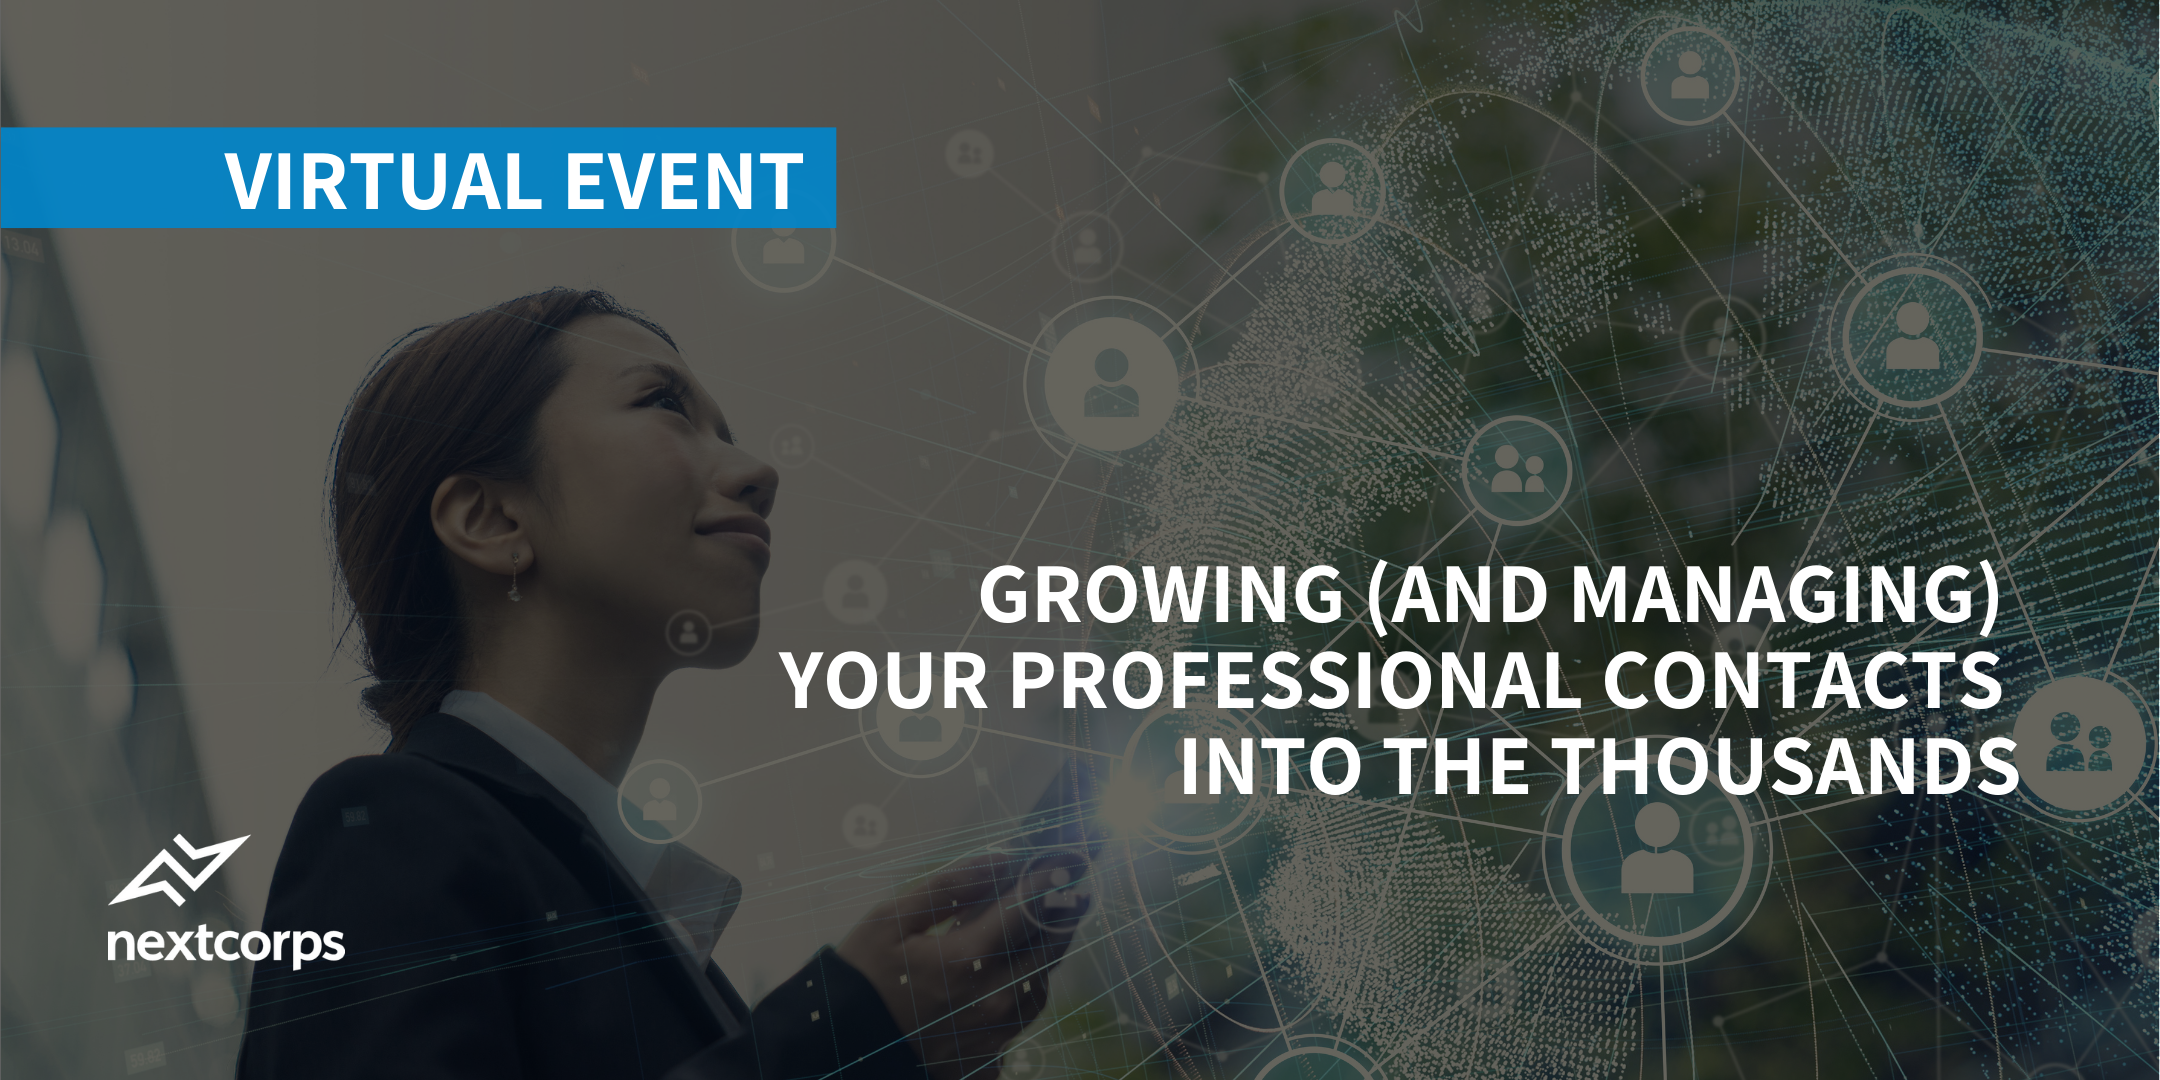 Growing and Managing Your Professional Contacts Into the Thousands